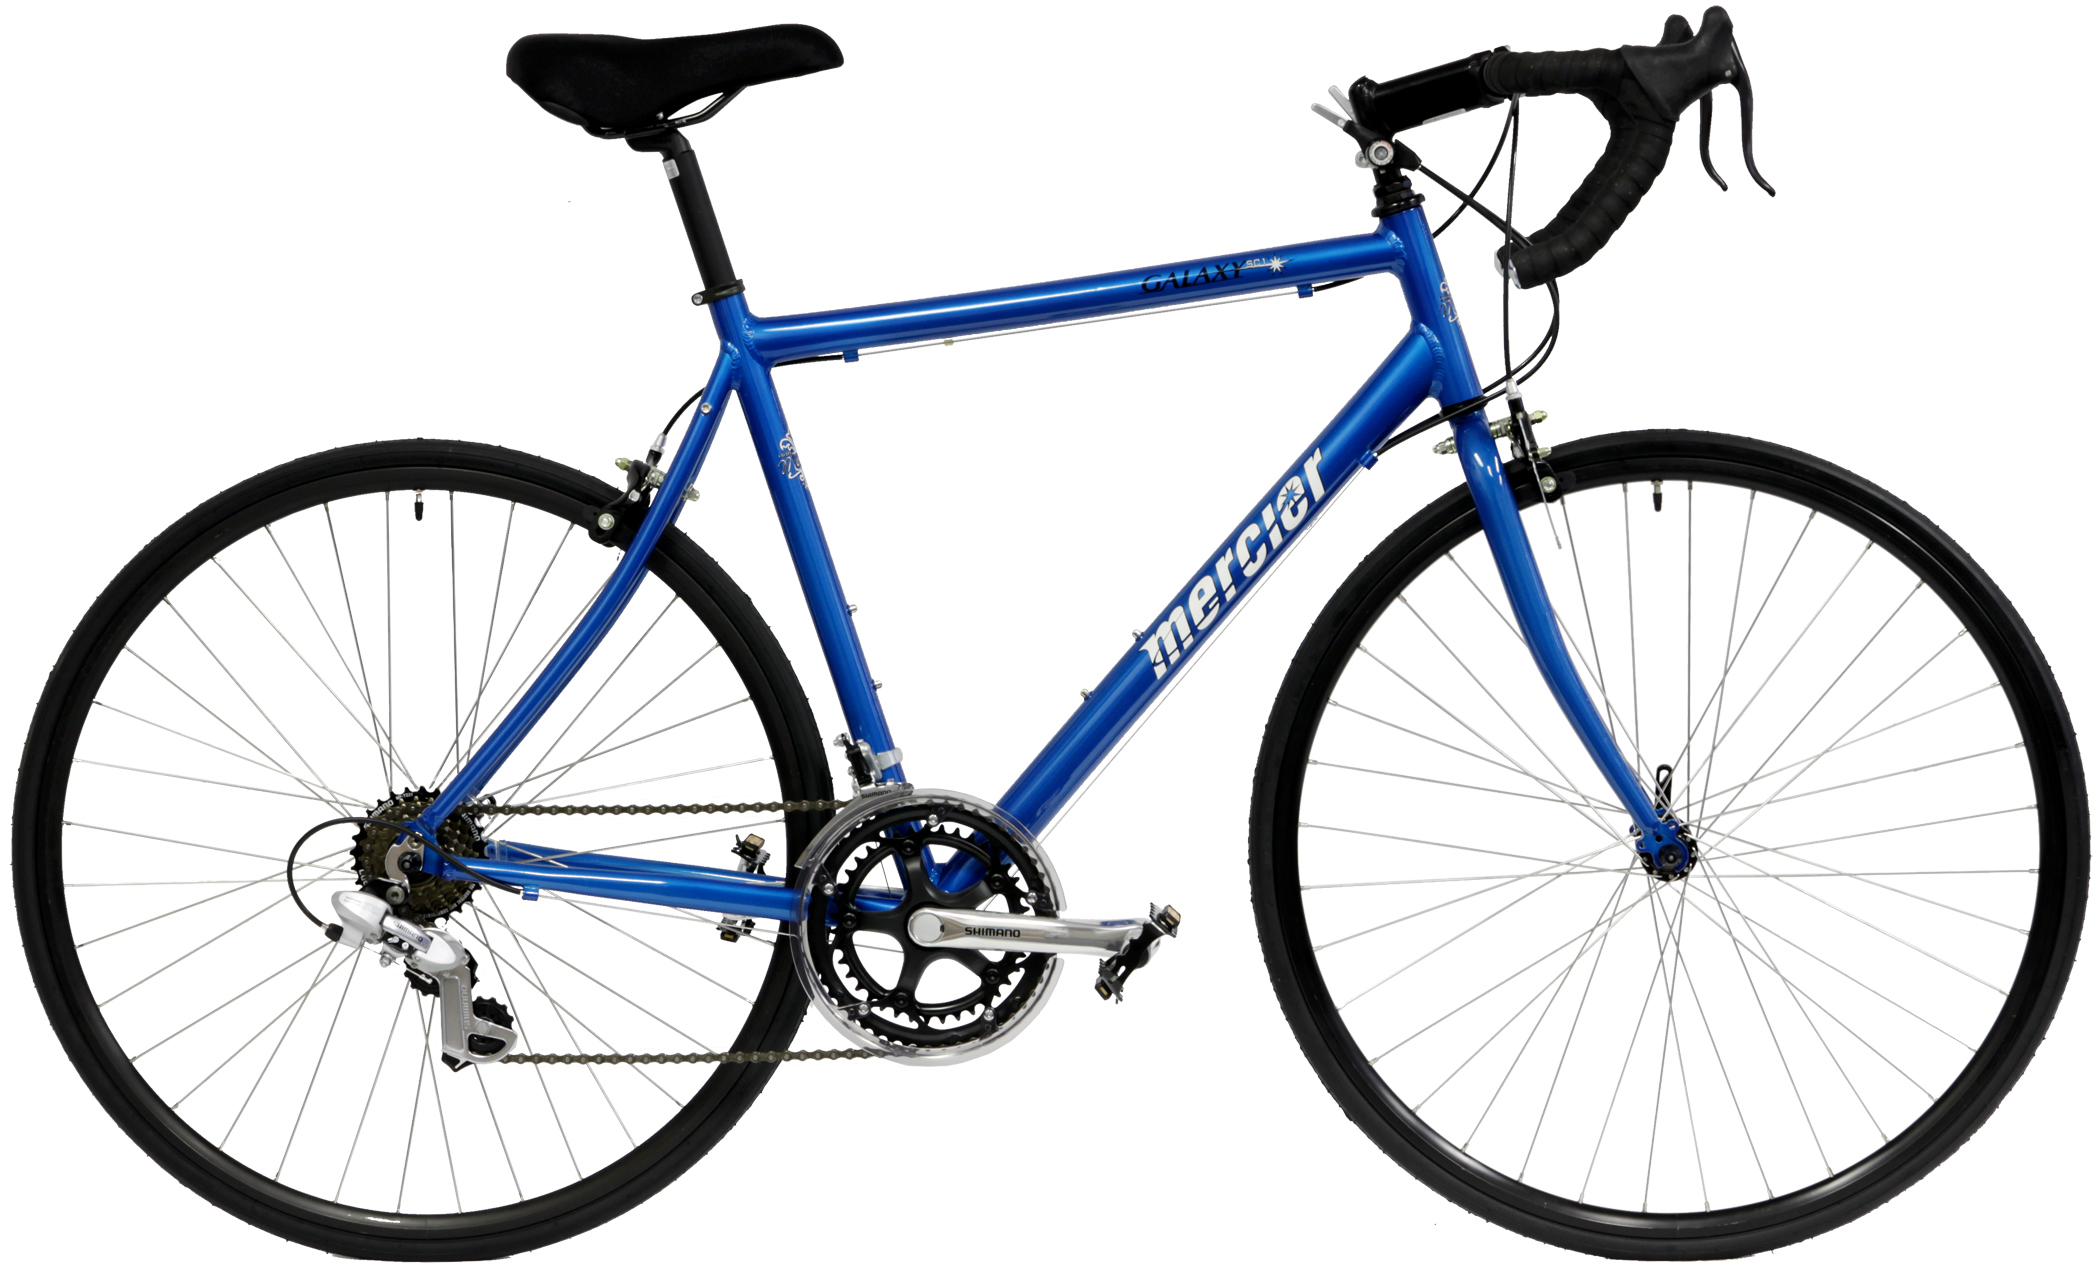 Bikesdirect.com Reviews Advertised as a MSRP bike